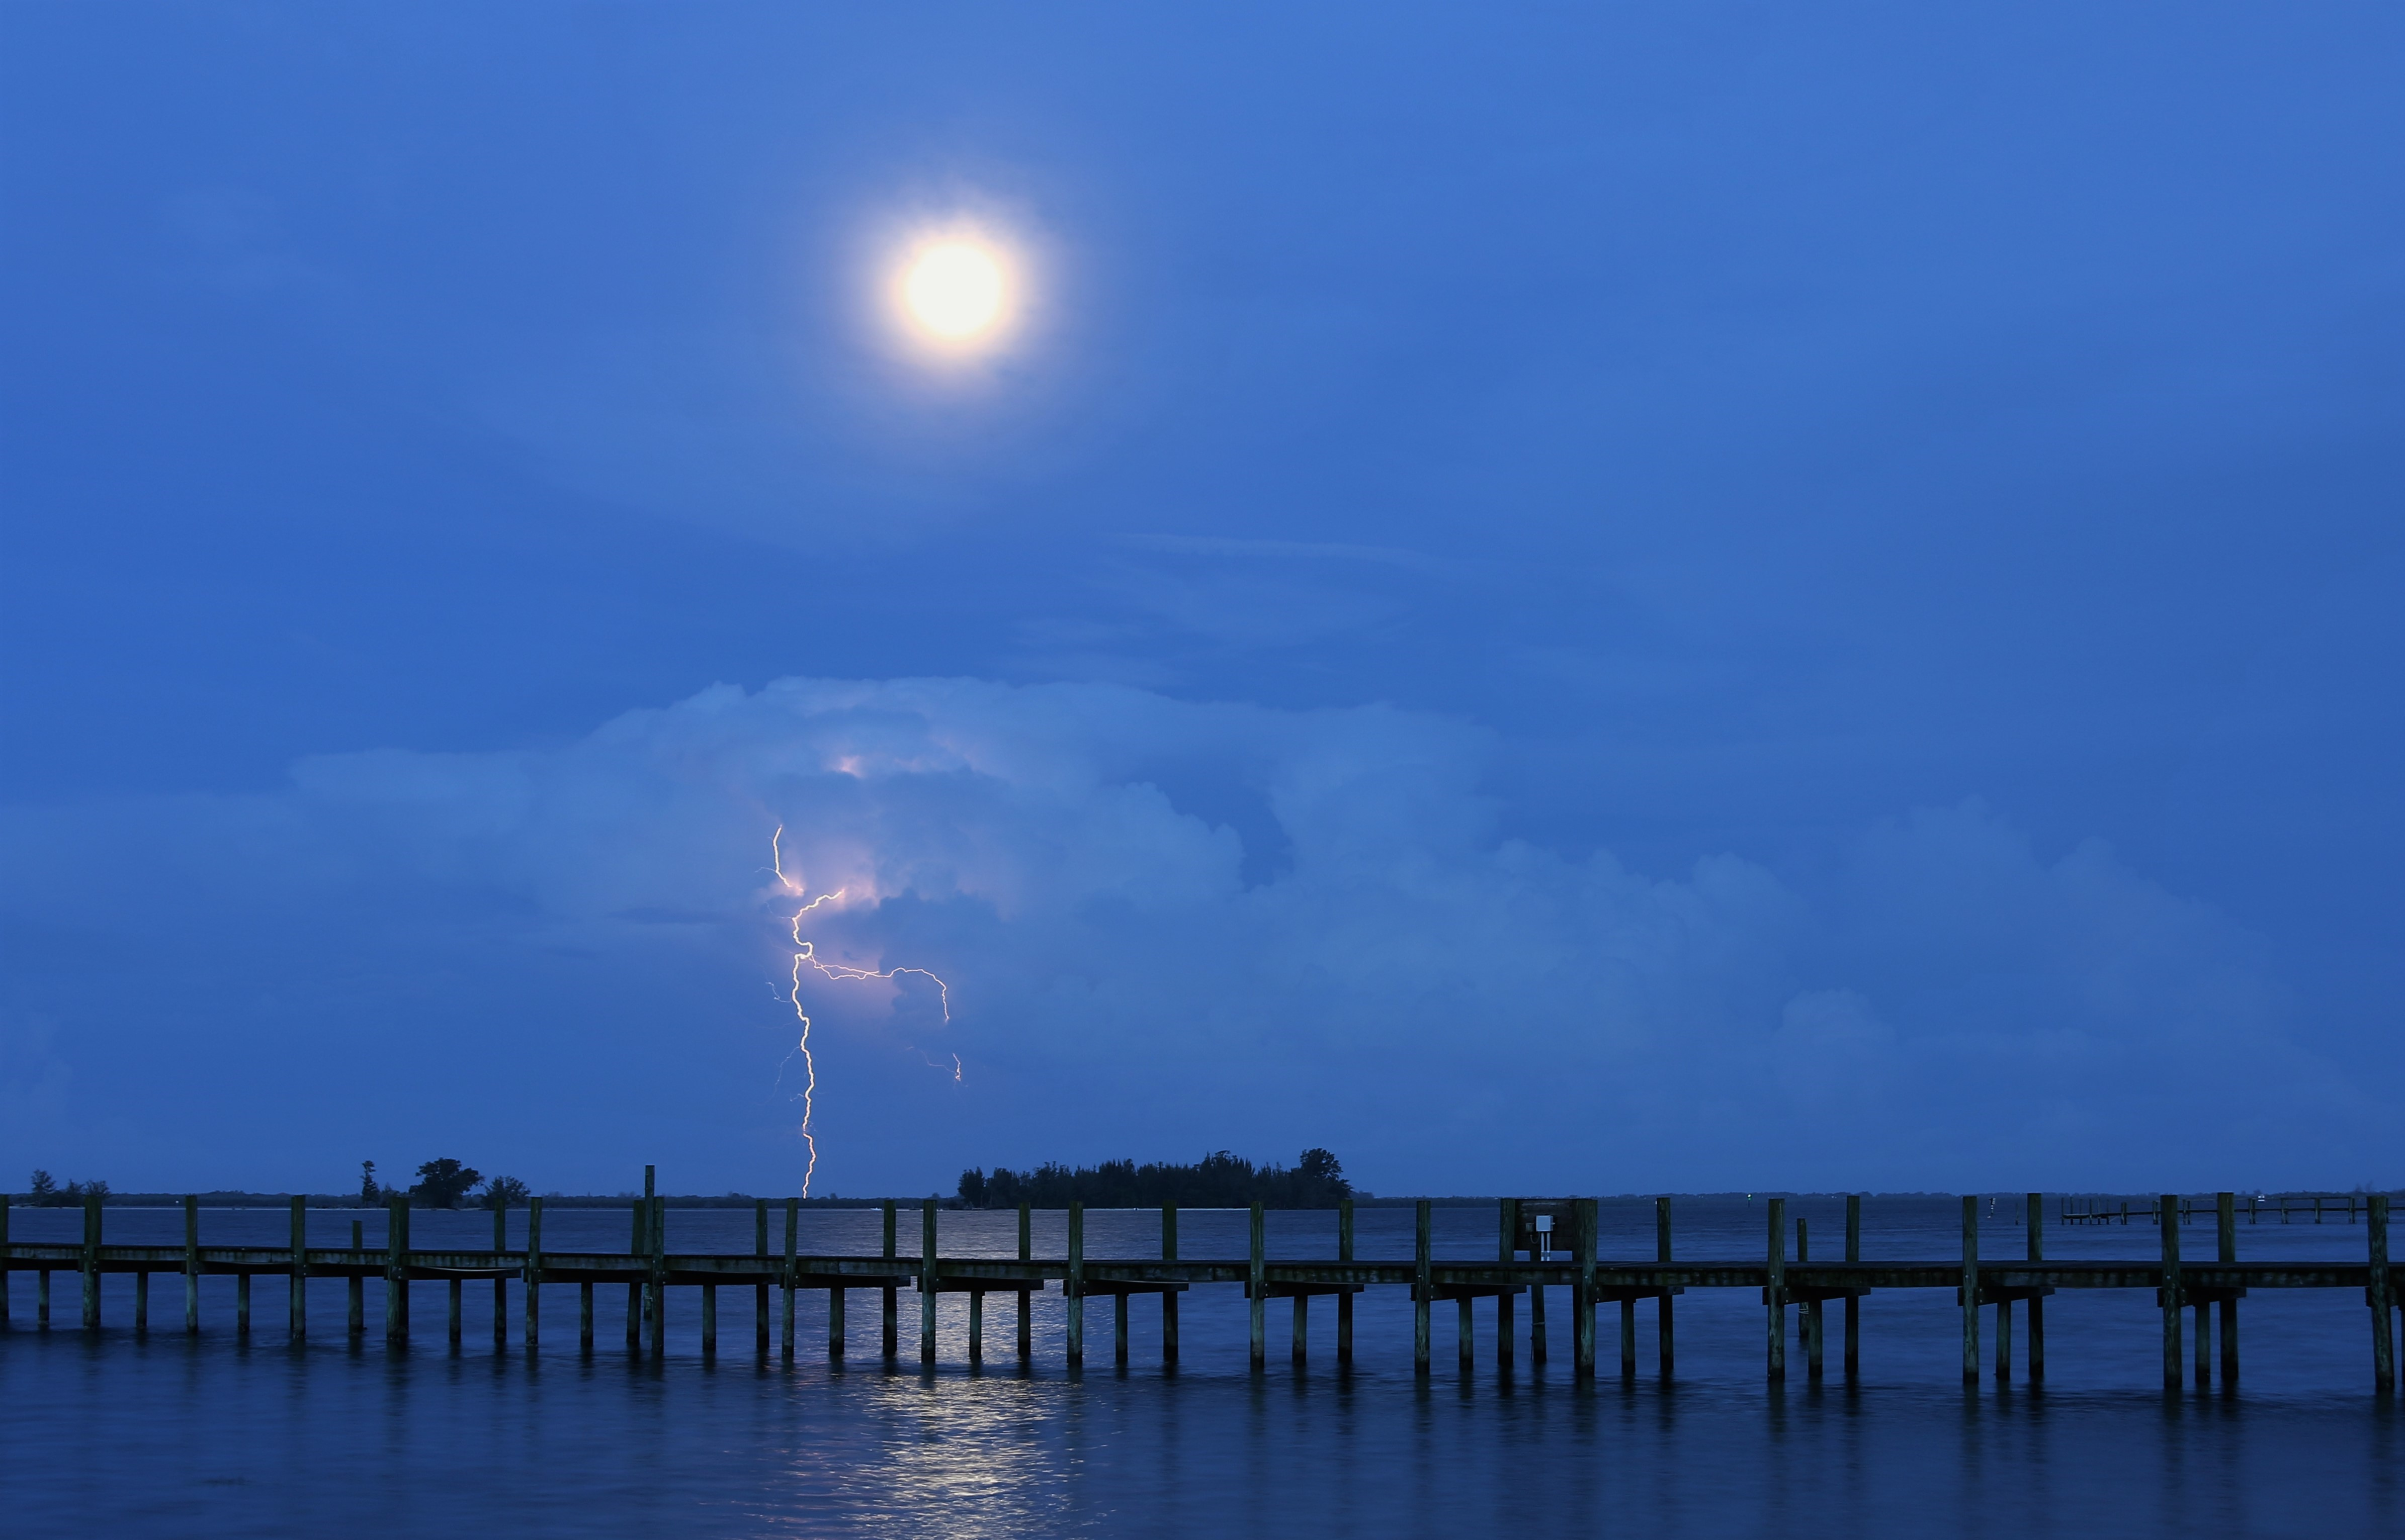 Lightning and the Moon